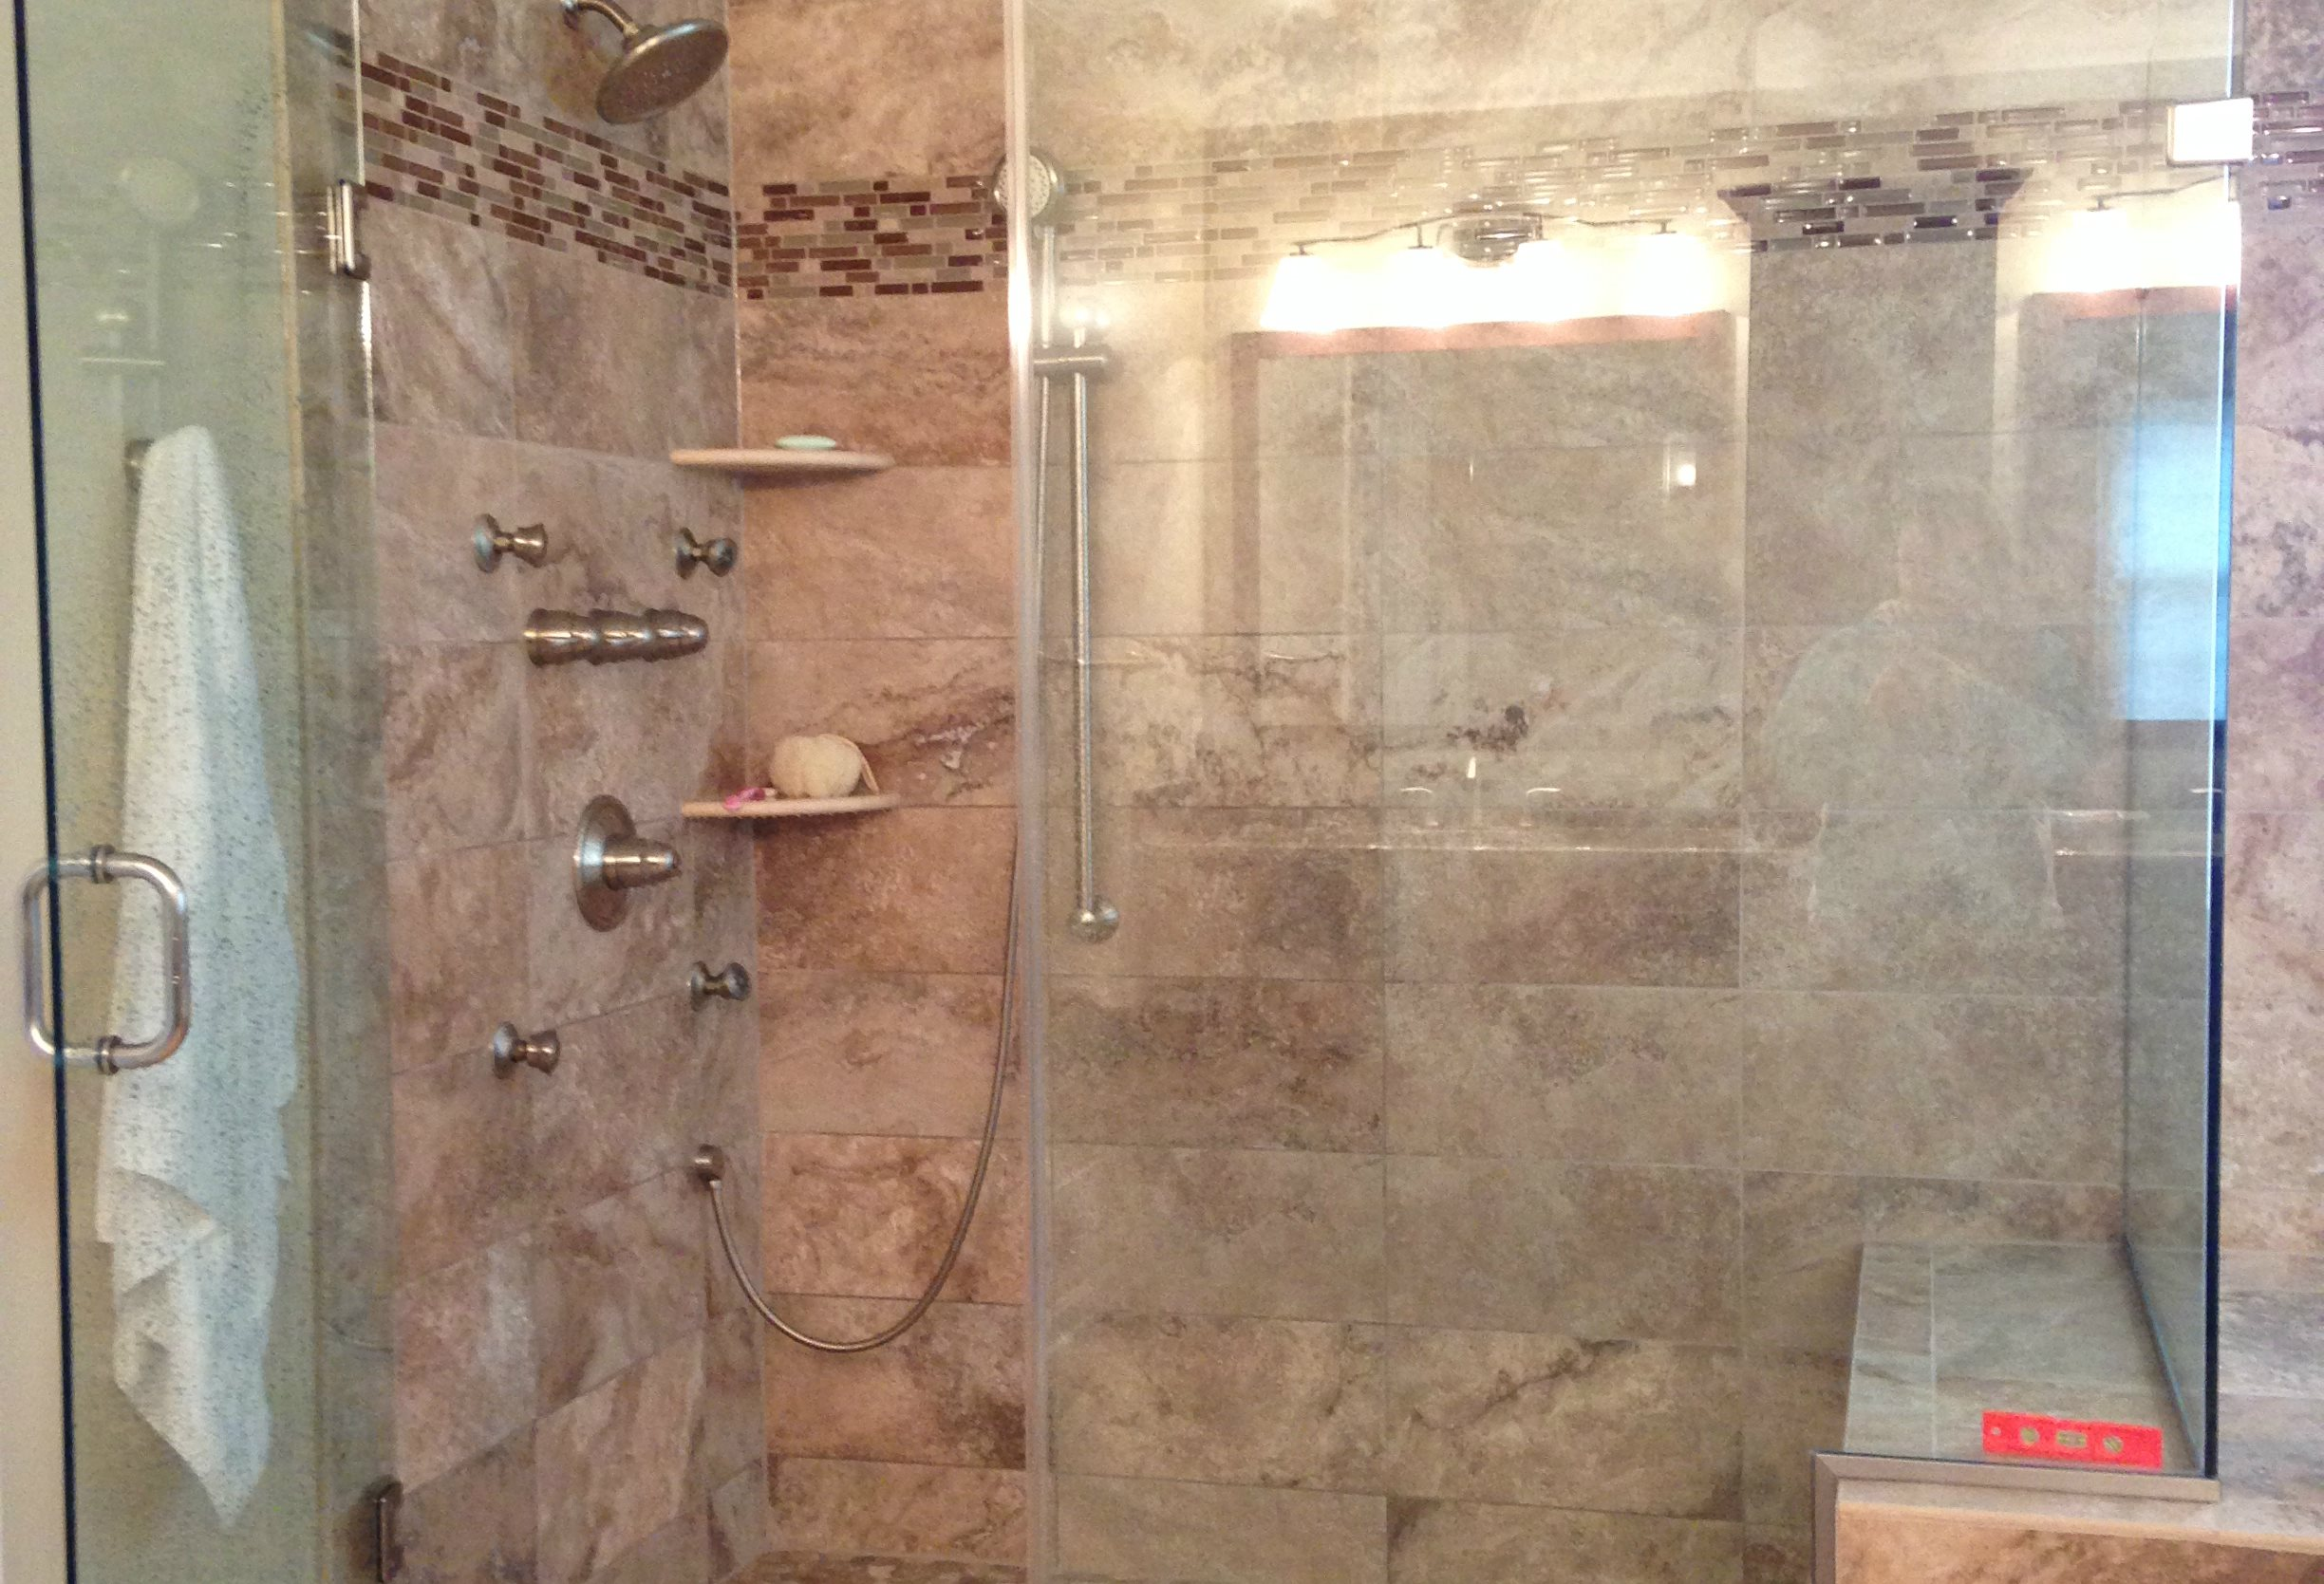 Services Bowen Remodeling Design - Whole bathroom remodel